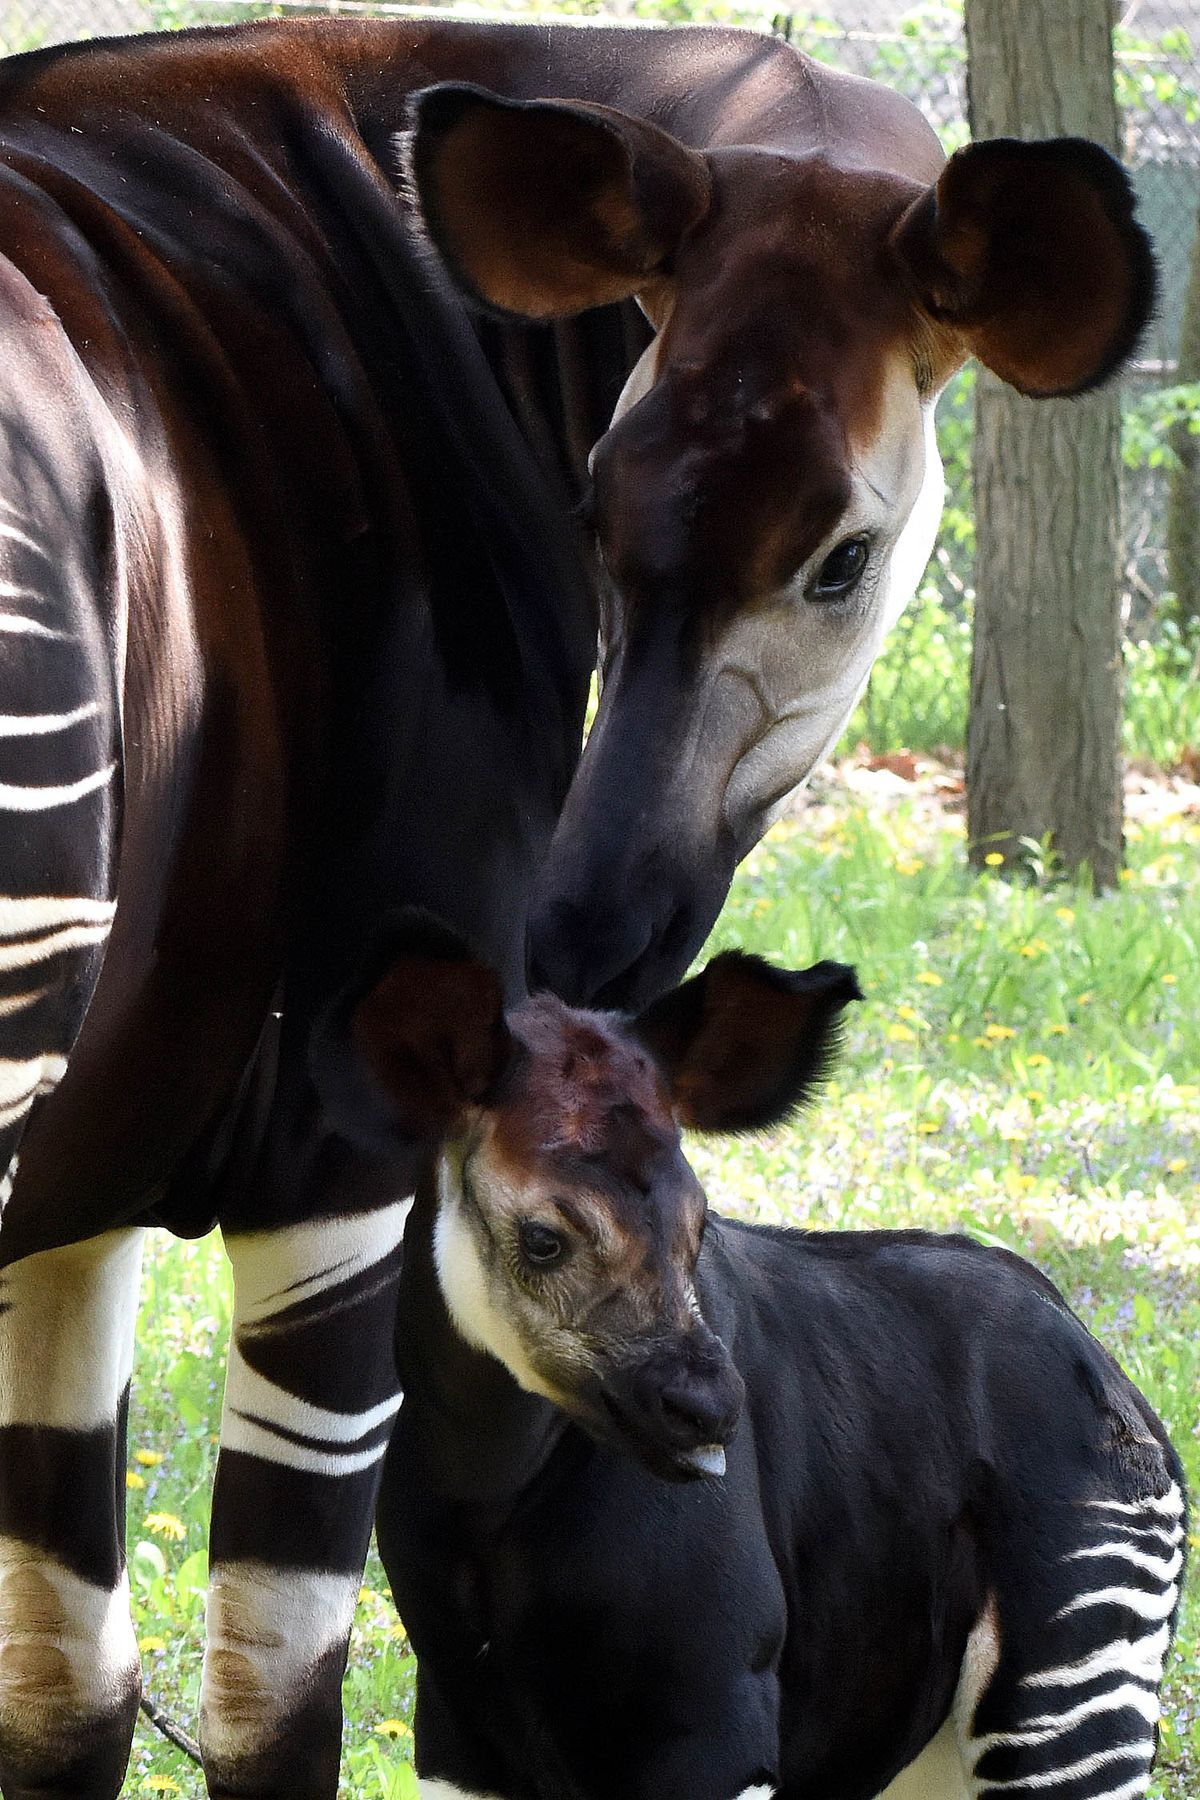 Will, a 1-month-old okapi calf at Brookfield Zoo, with his mom Augusta K. | Jim Schulz/Chicago Zoological Society